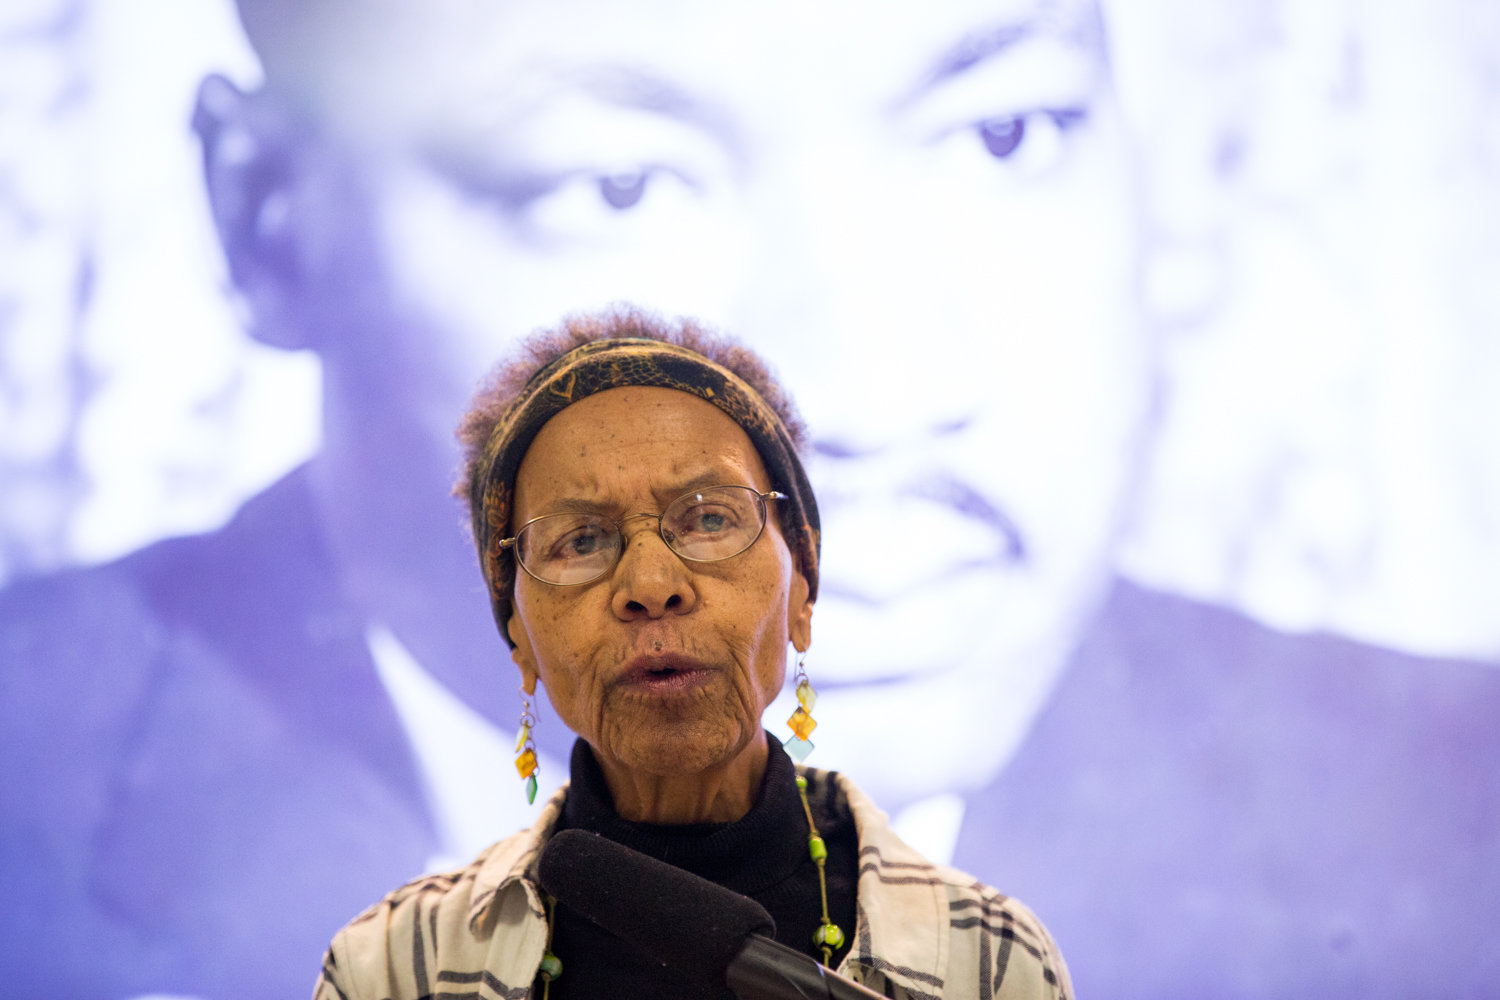 Ernece Kelly talks about the life and work of Martin Luther King Jr., with whom she worked for in Chicago, during a presentation at RSS-Riverdale Senior Services last week about the civil rights icon's legacy.